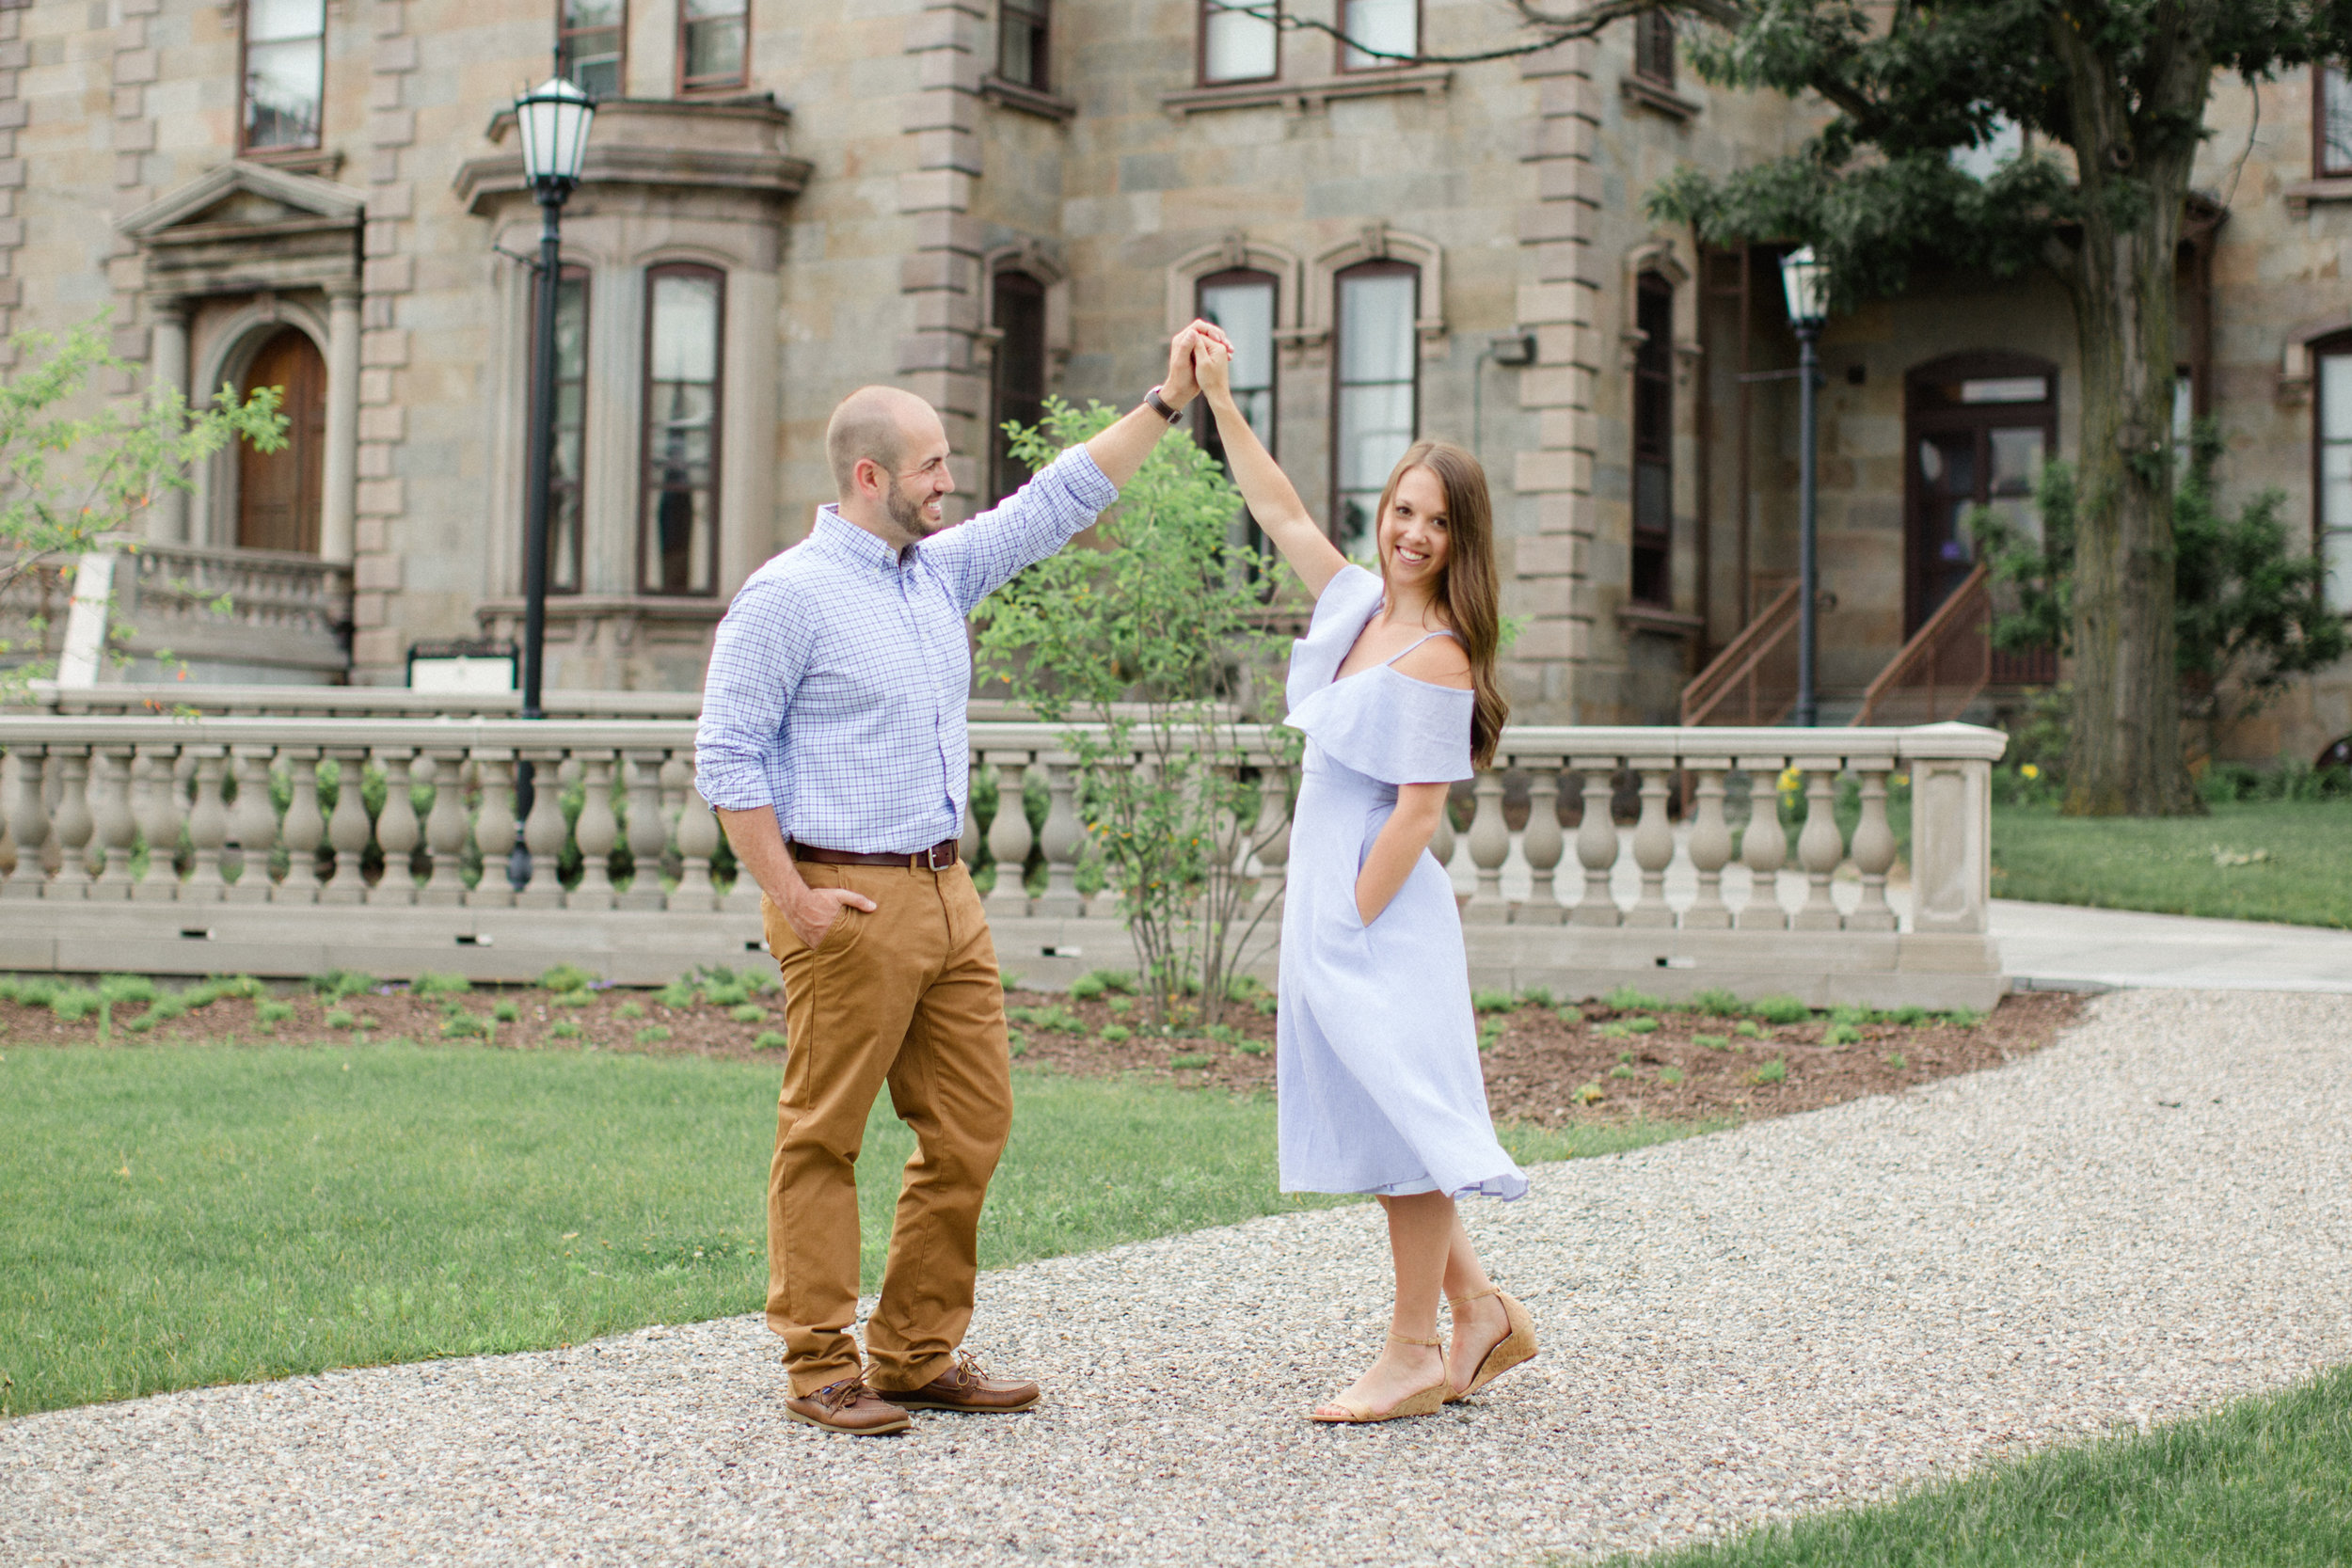 University of Scranton Engagement Session Photos_JDP-27.jpg